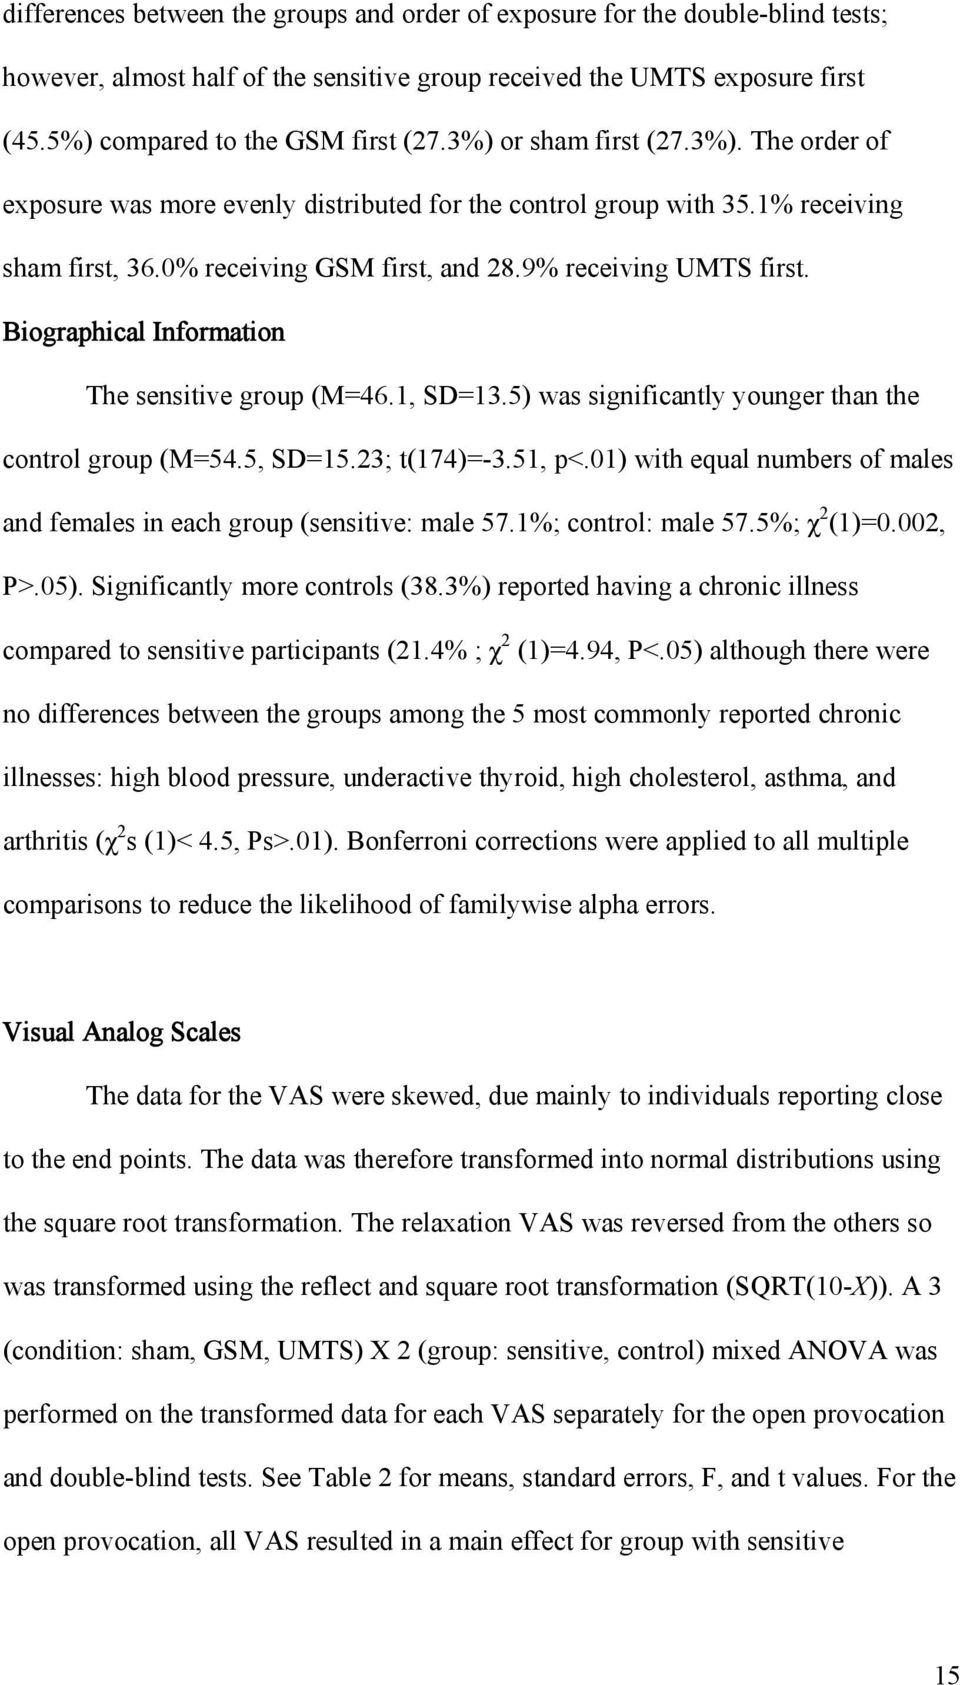 Biographical Information The sensitive group (M=46.1, SD=13.5) was significantly younger than the control group (M=54.5, SD=15.23; t(174)=-3.51, p<.